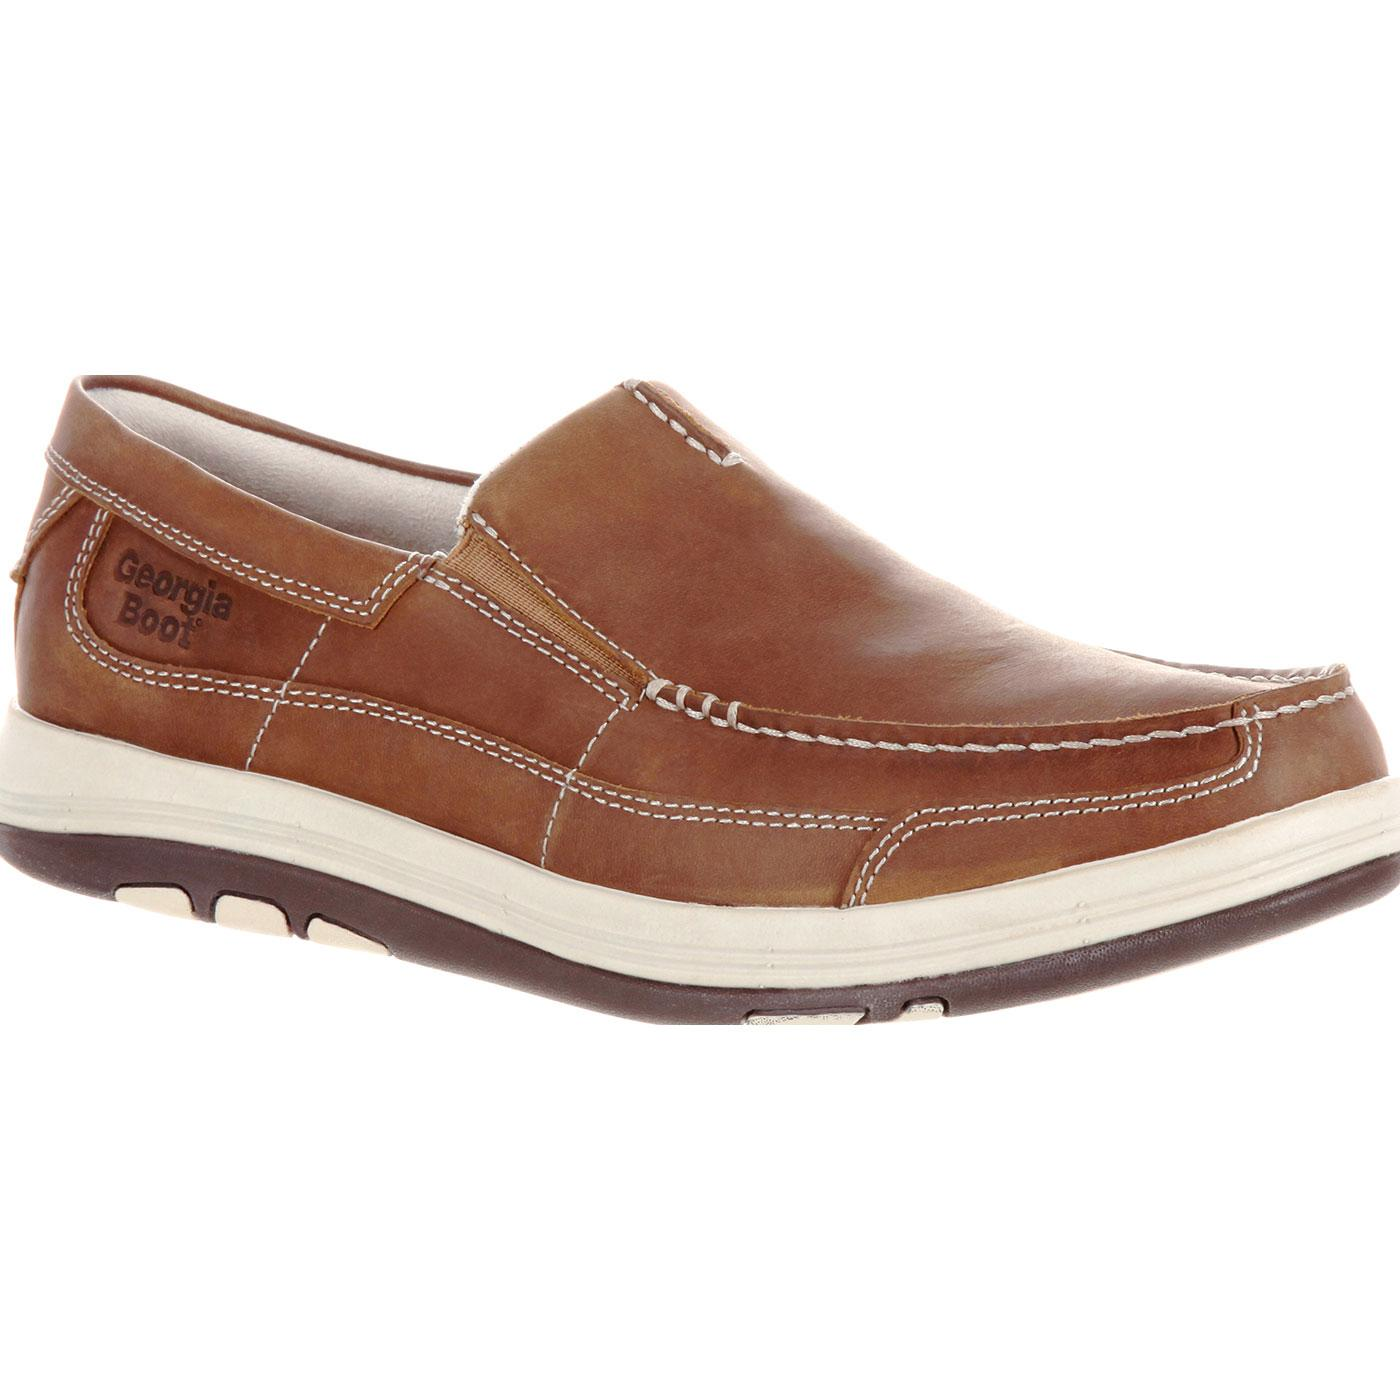 Georgia Boot Tybee Island Steel Toe Static-Dissipative Slip-On Oxford by Georgia Boot